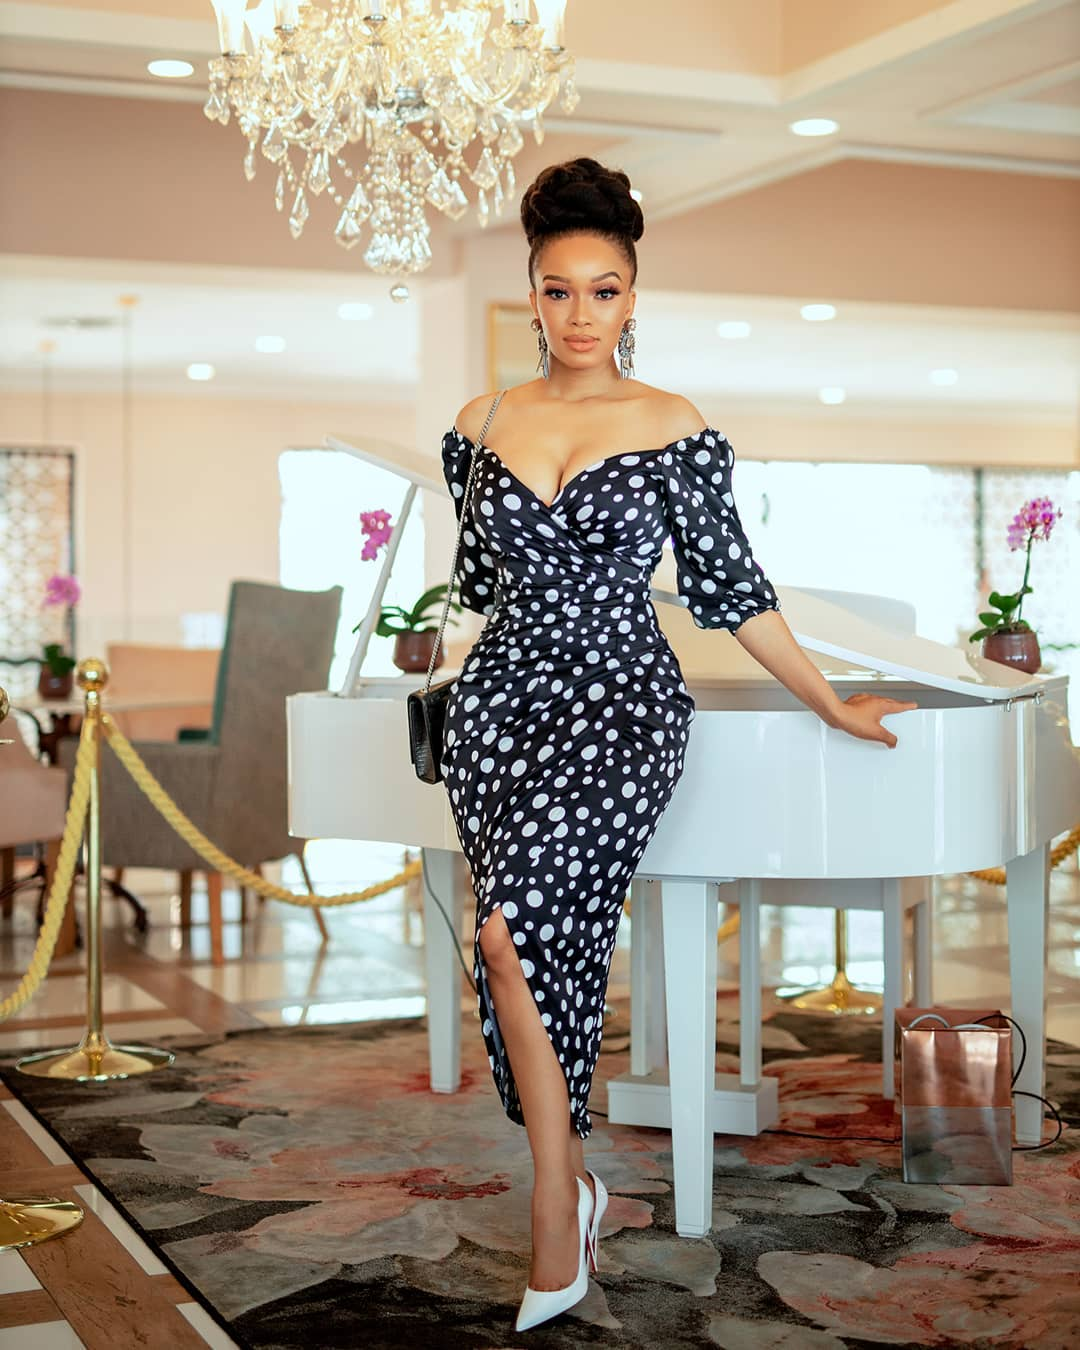 My gratitude knows no bounds when it comes to my acting career – Dineo Langa